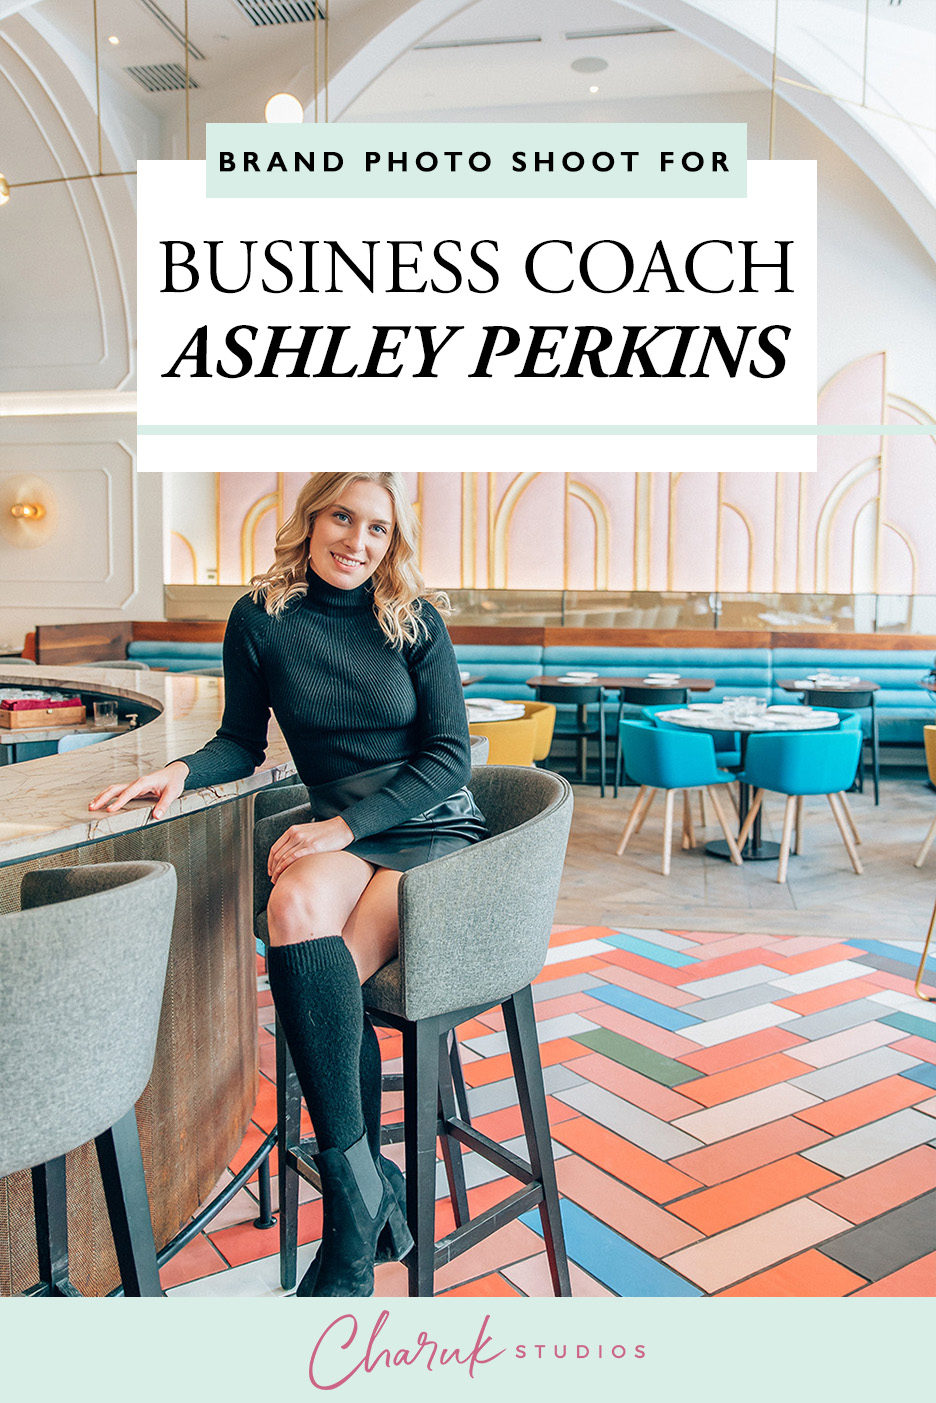 Brand Photo Shoot for Business Coach Ashley Perkins by Charuk Studios